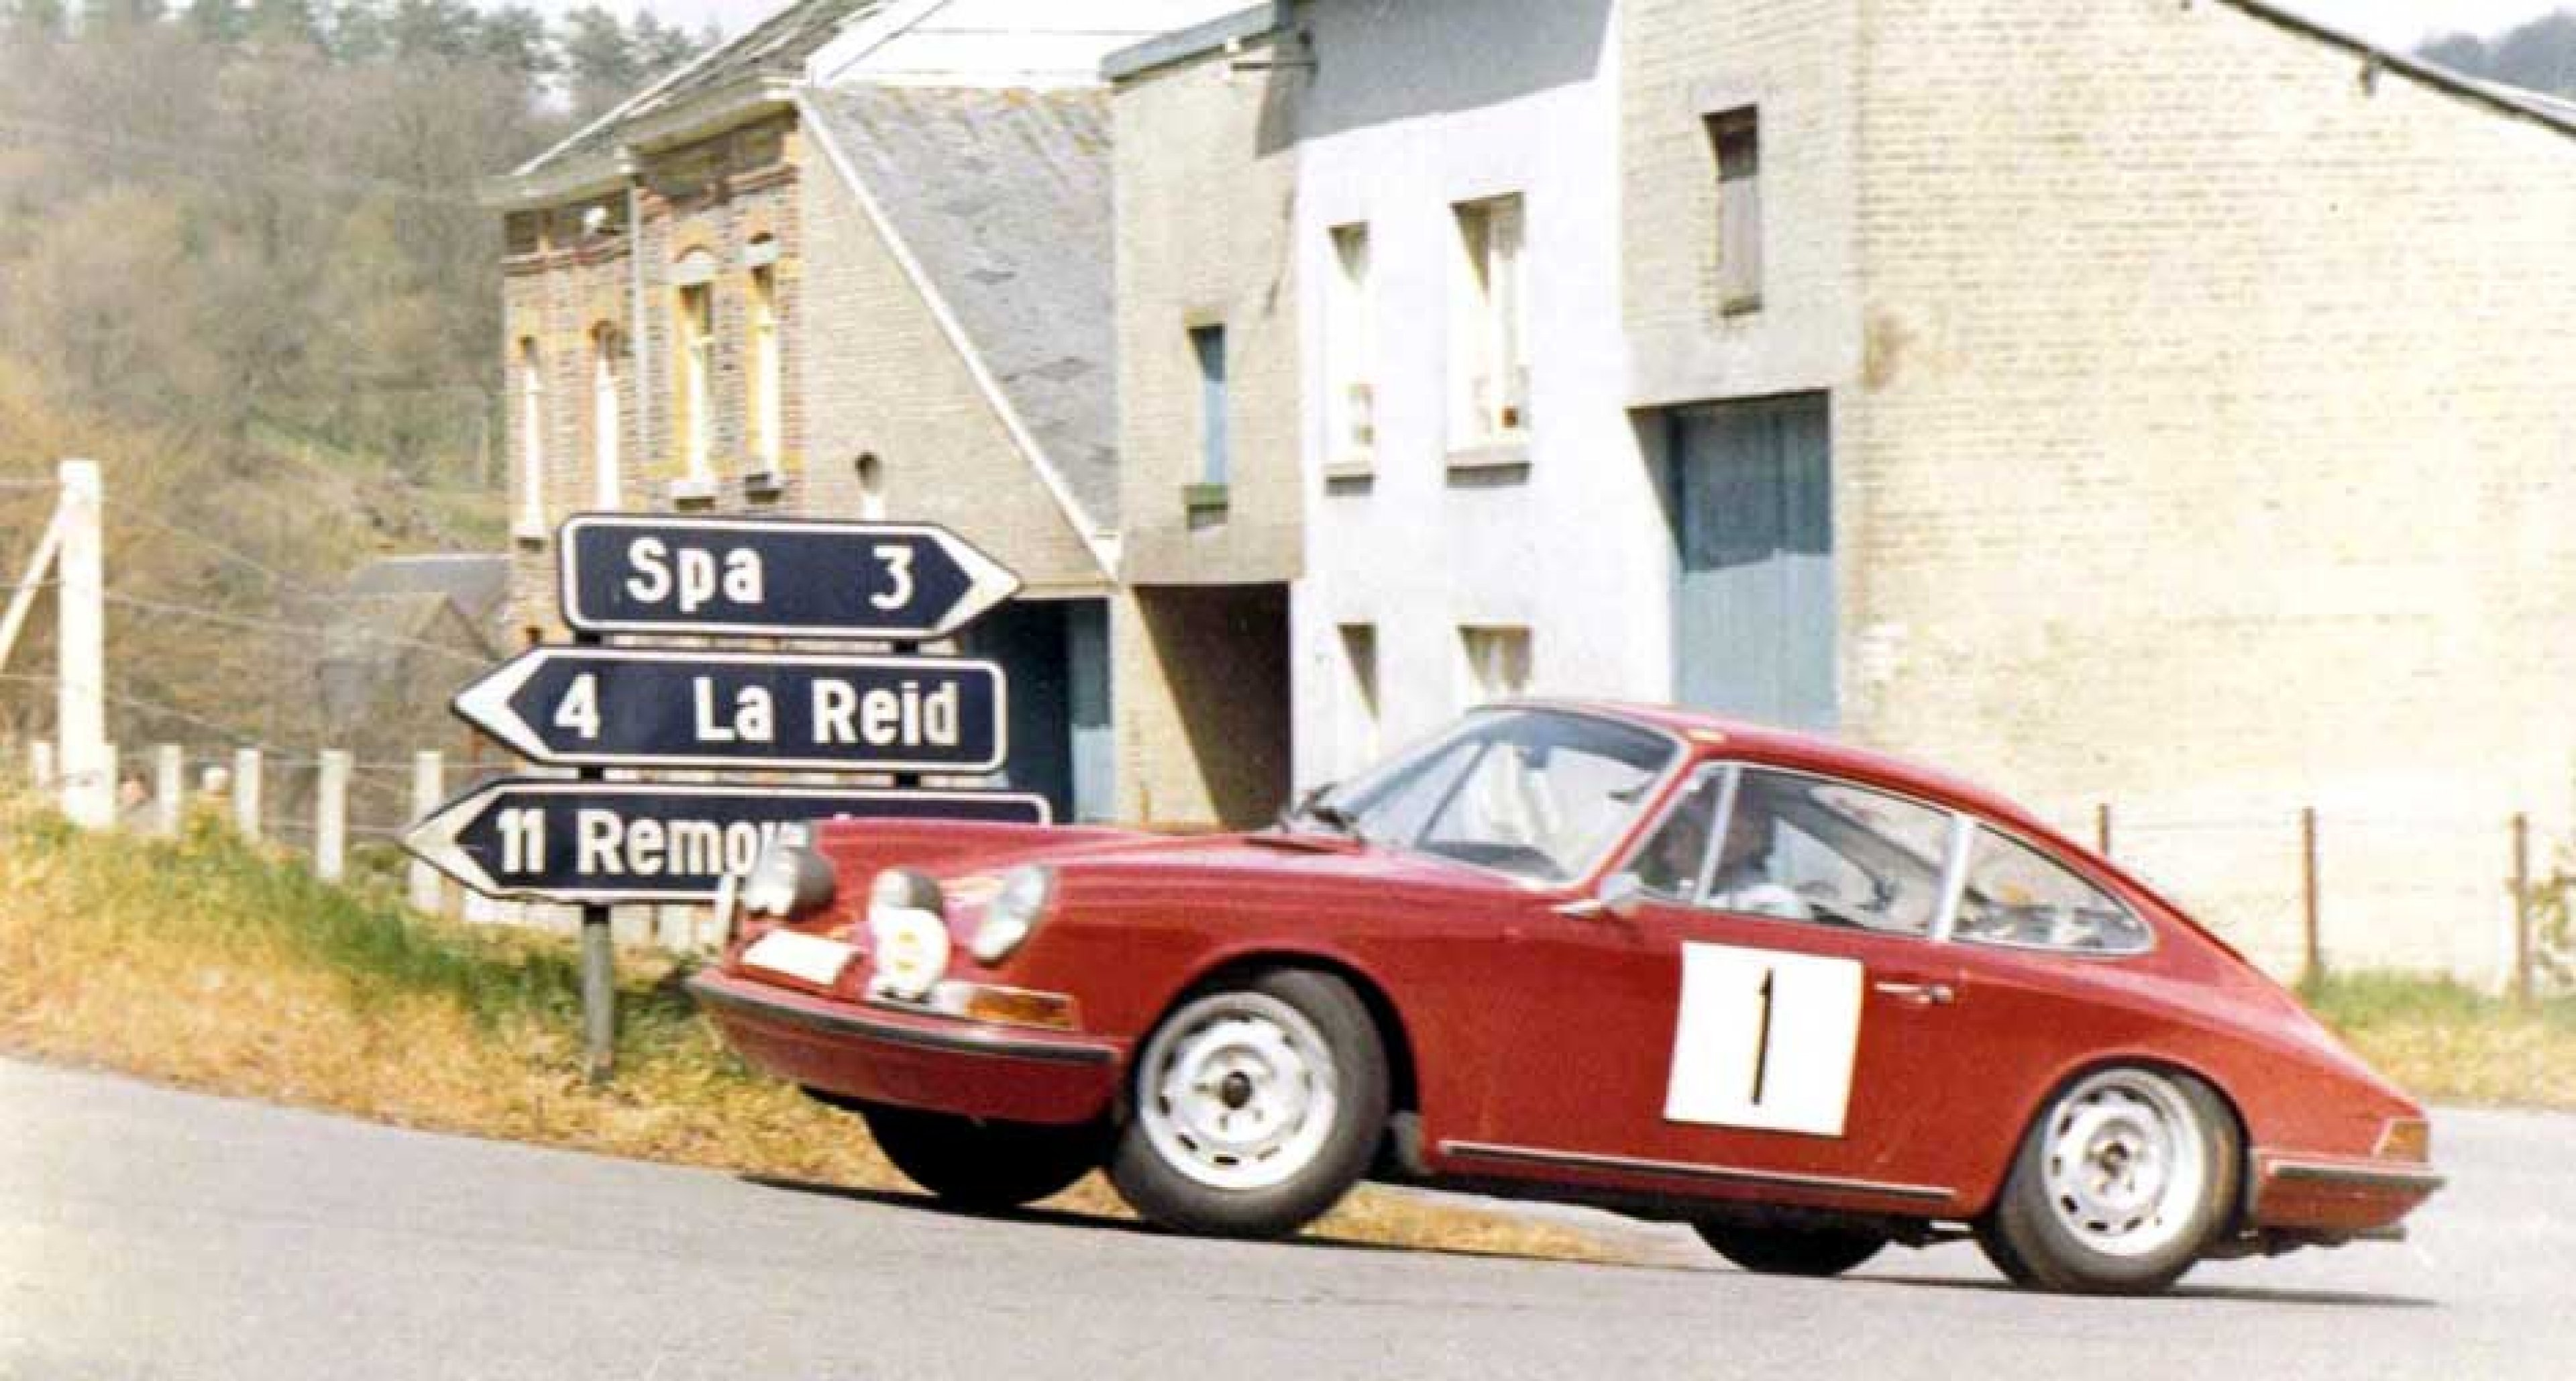 """Tulip Rally 1967. """"By then I was designing my own cars with the help of my engineer friend Hermann Briem, who was building them. This one had maximum speeds in the five gears of 20, 40, 60, 80 and 100mph. You can imagine the acceleration..."""""""